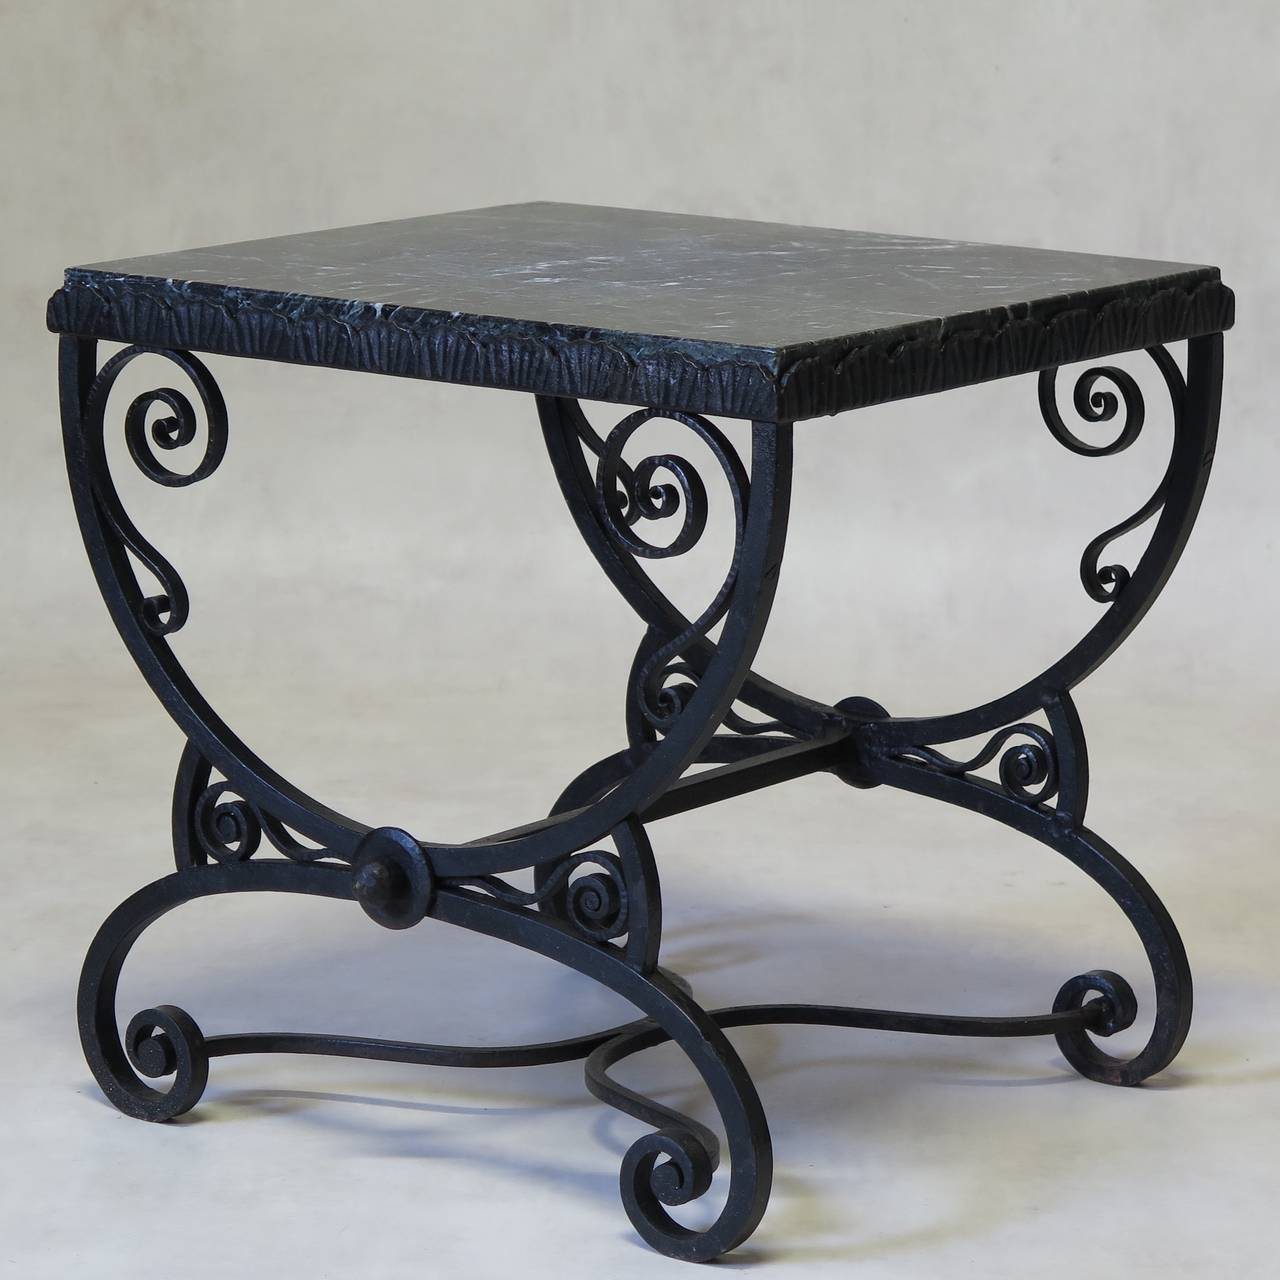 Charming Art Deco Table With A Scrolling, Curule Shaped, Hammered And Wrought  Iron